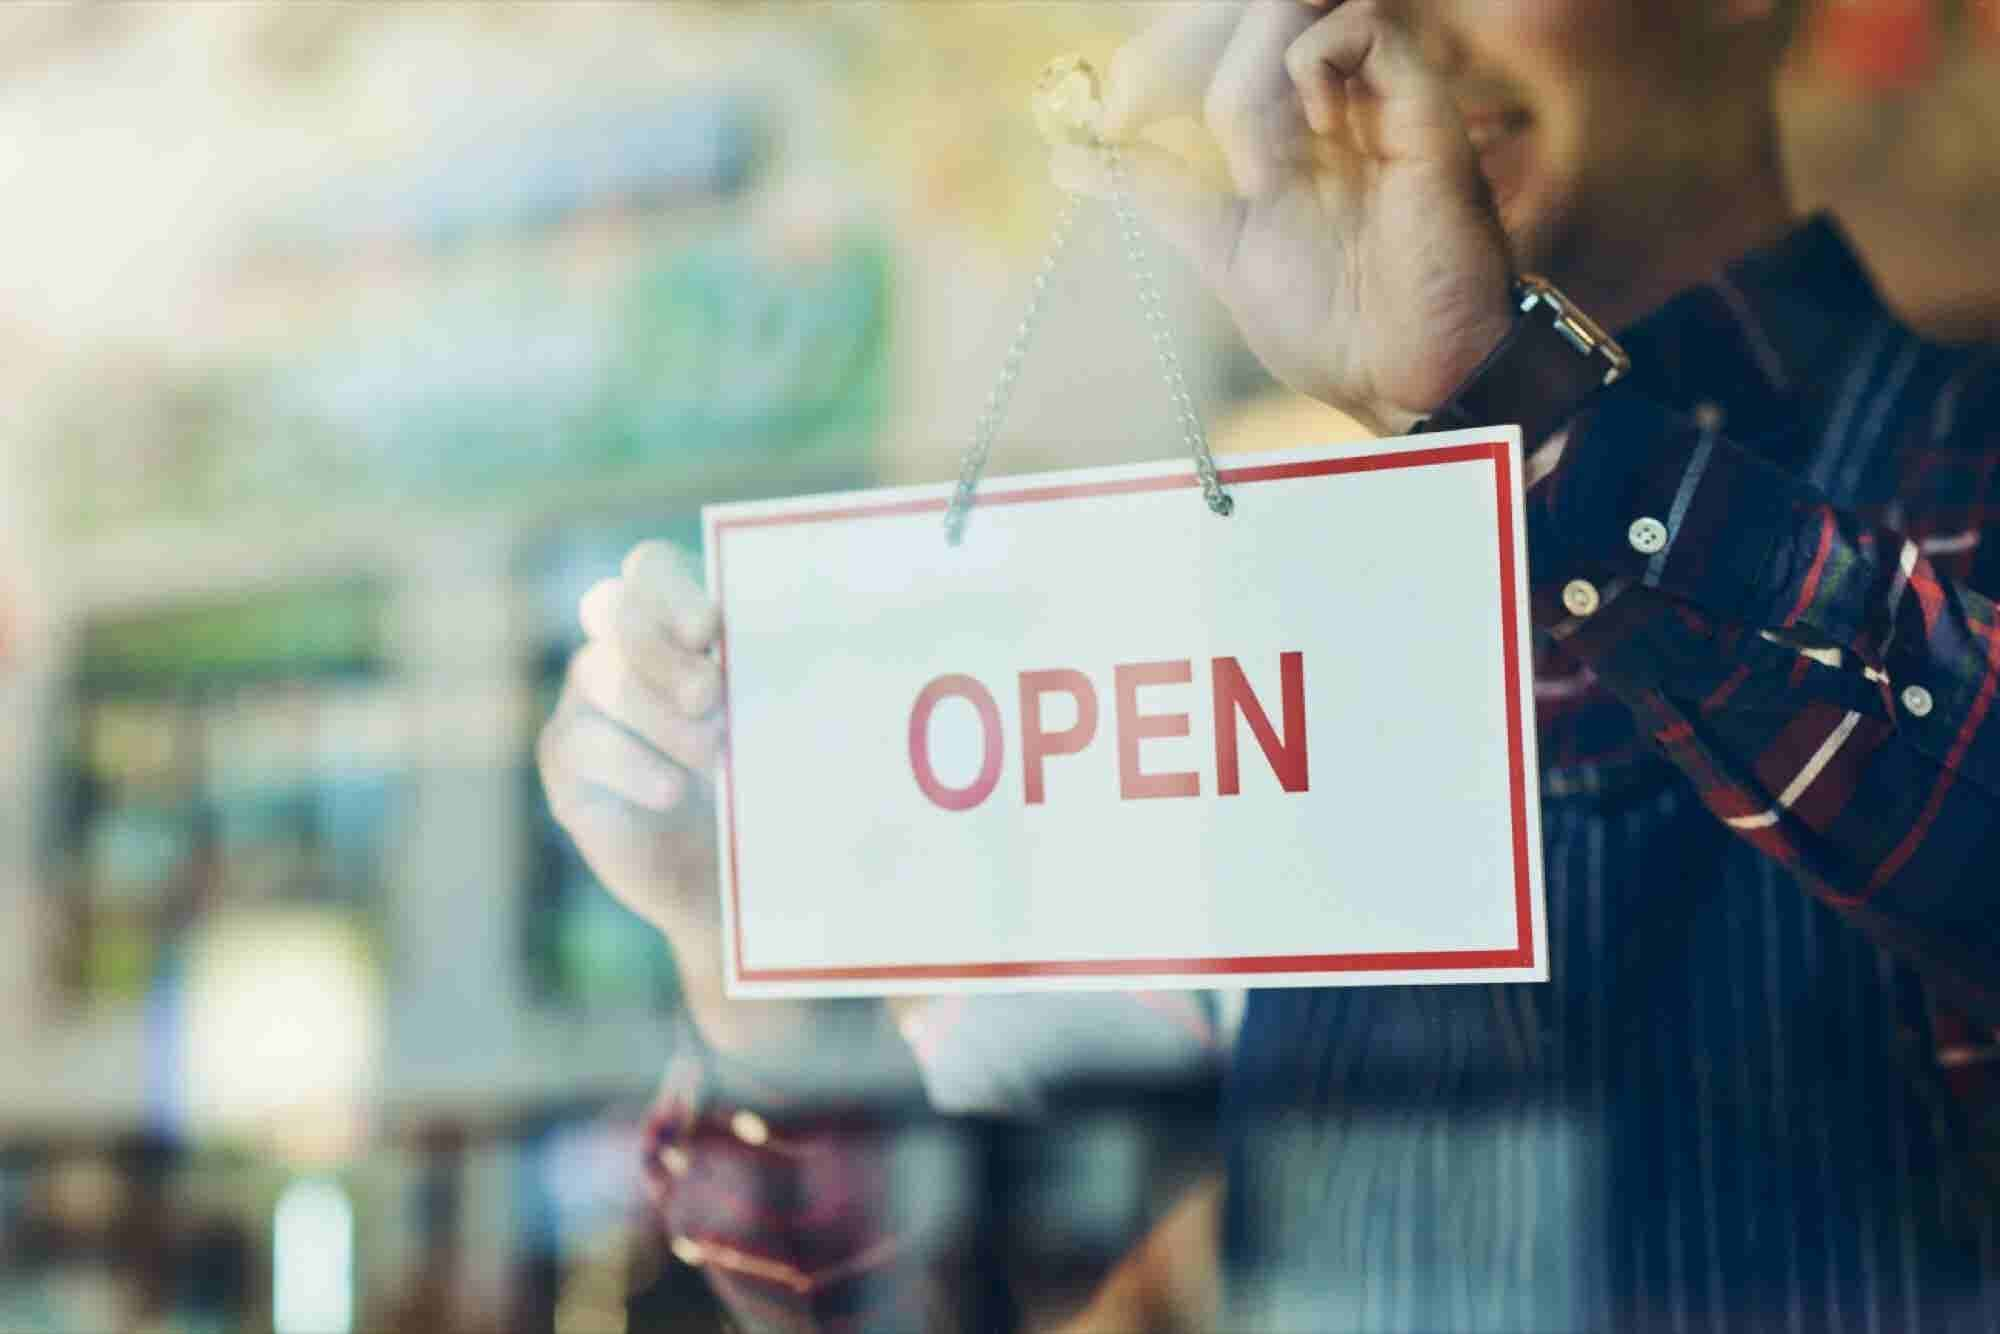 The 8 Things You Need to Know If You Think You're Ready to Turn Your Business Into a Franchise